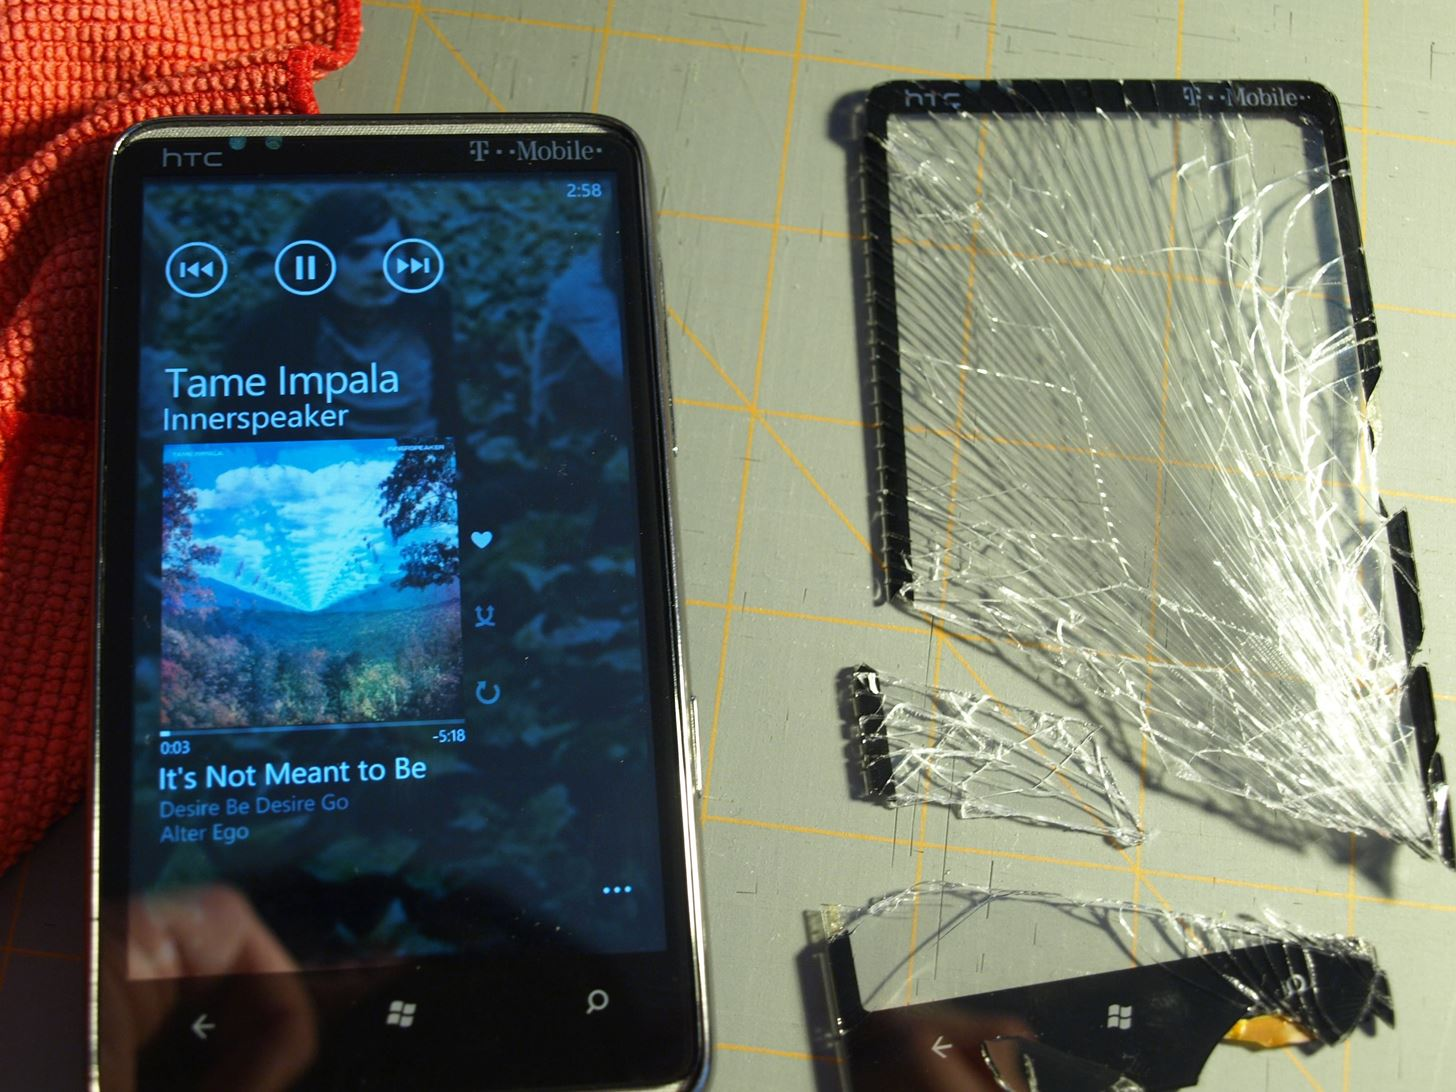 Diy Repair How To Fix Your Broken Smartphone Like A Pro Mobile Short Circuit The Screen Replaced And Working On An Htc Hd7 Image By Kg23 Flickr